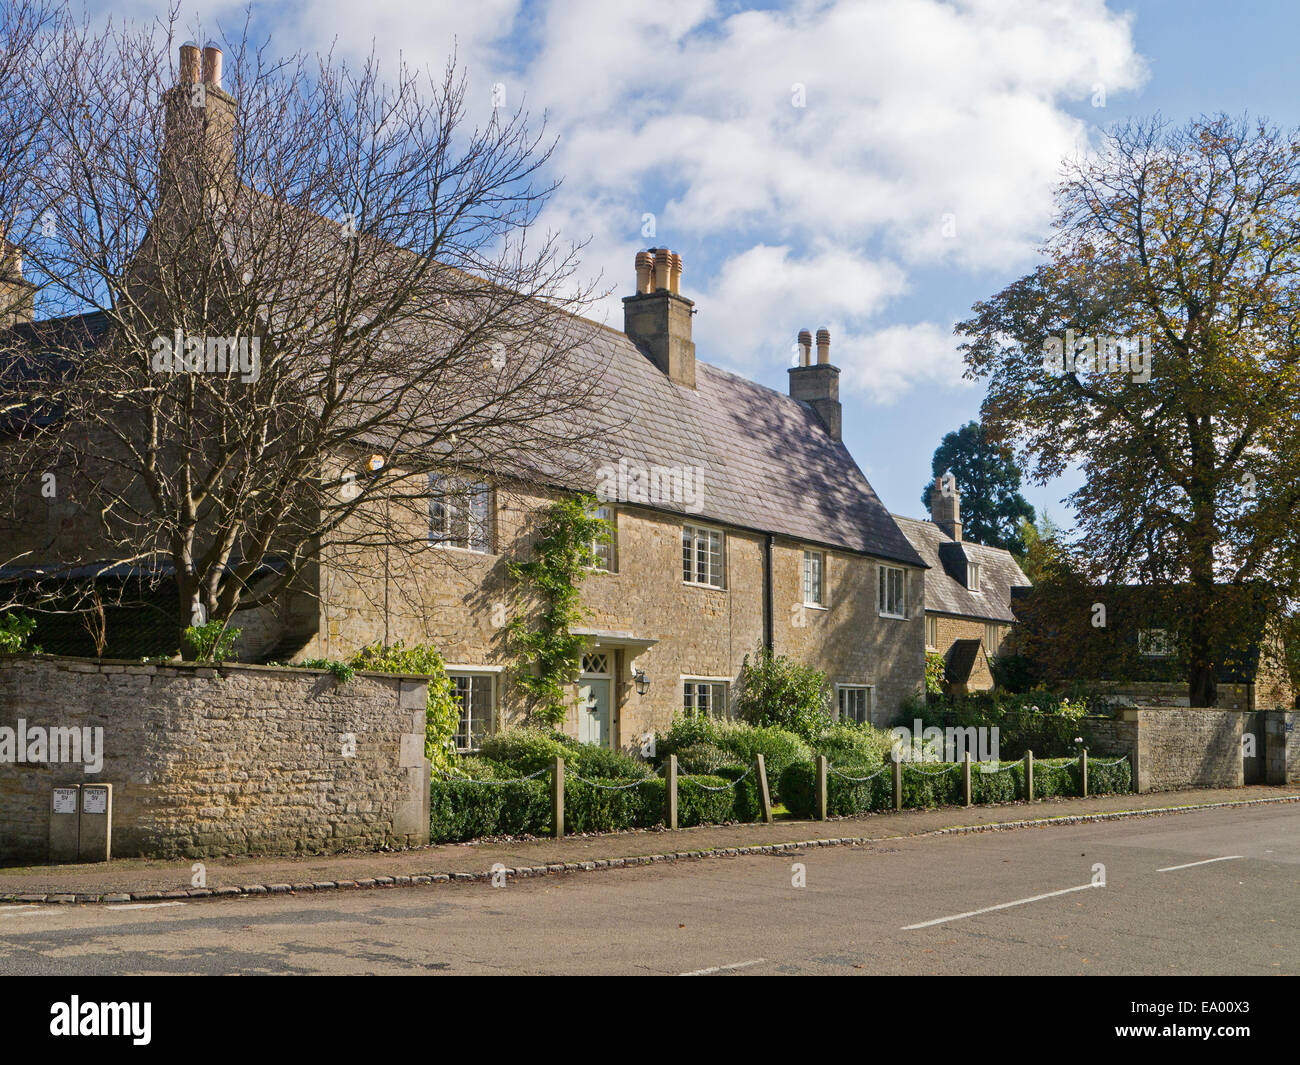 Substantial stone built house in the village of Fotheringhay, Northamptonshire, UK - Stock Image